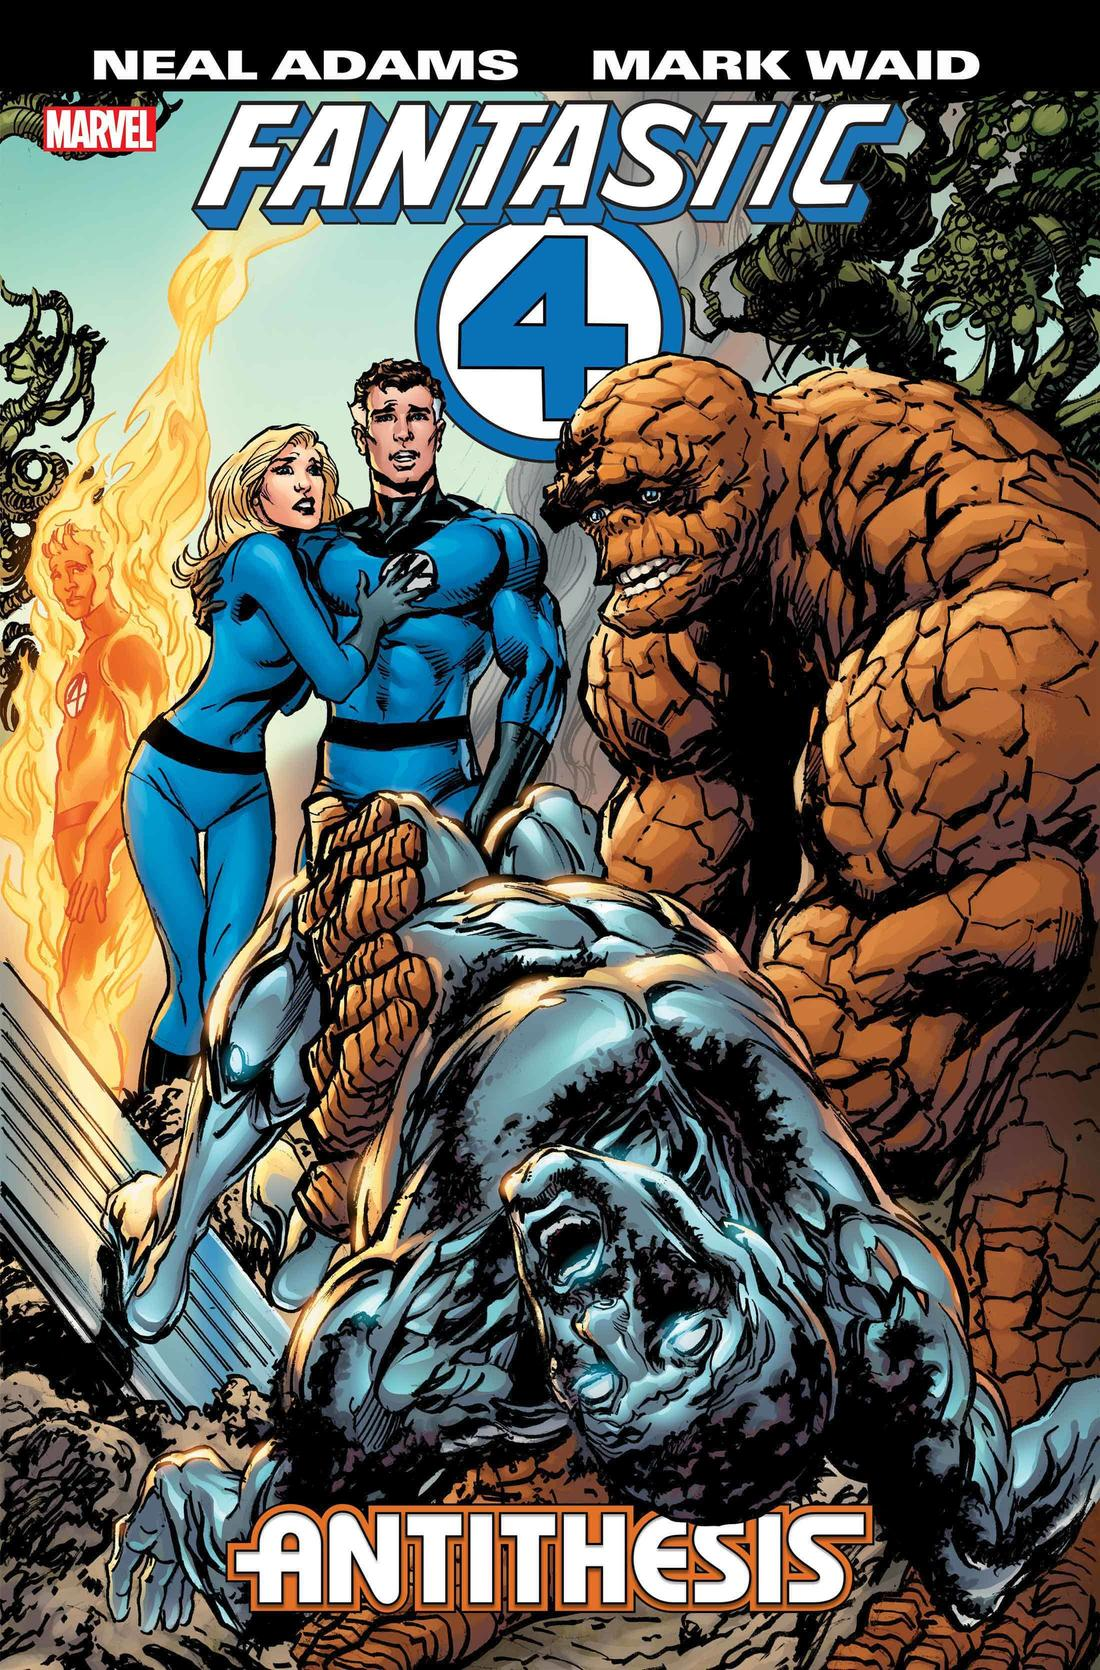 FANTASTIC FOUR: ANTITHESIS cover by Neal Adams